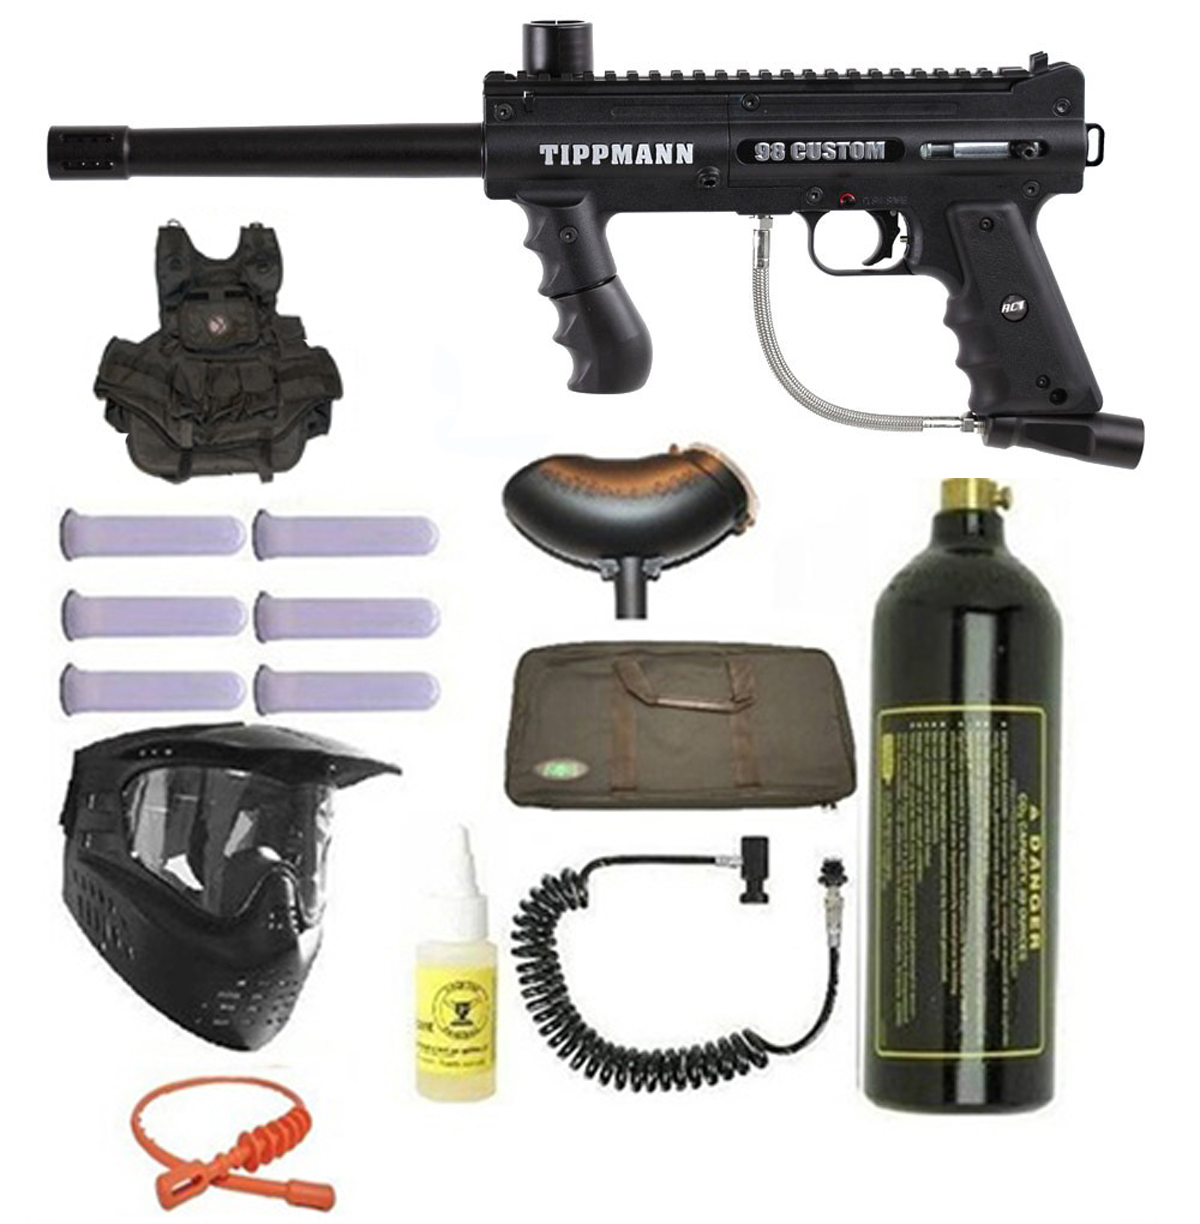 ... Tippmann 98 Custom Ultra Paintball Marker Gun 3Skull Vest Sniper Set